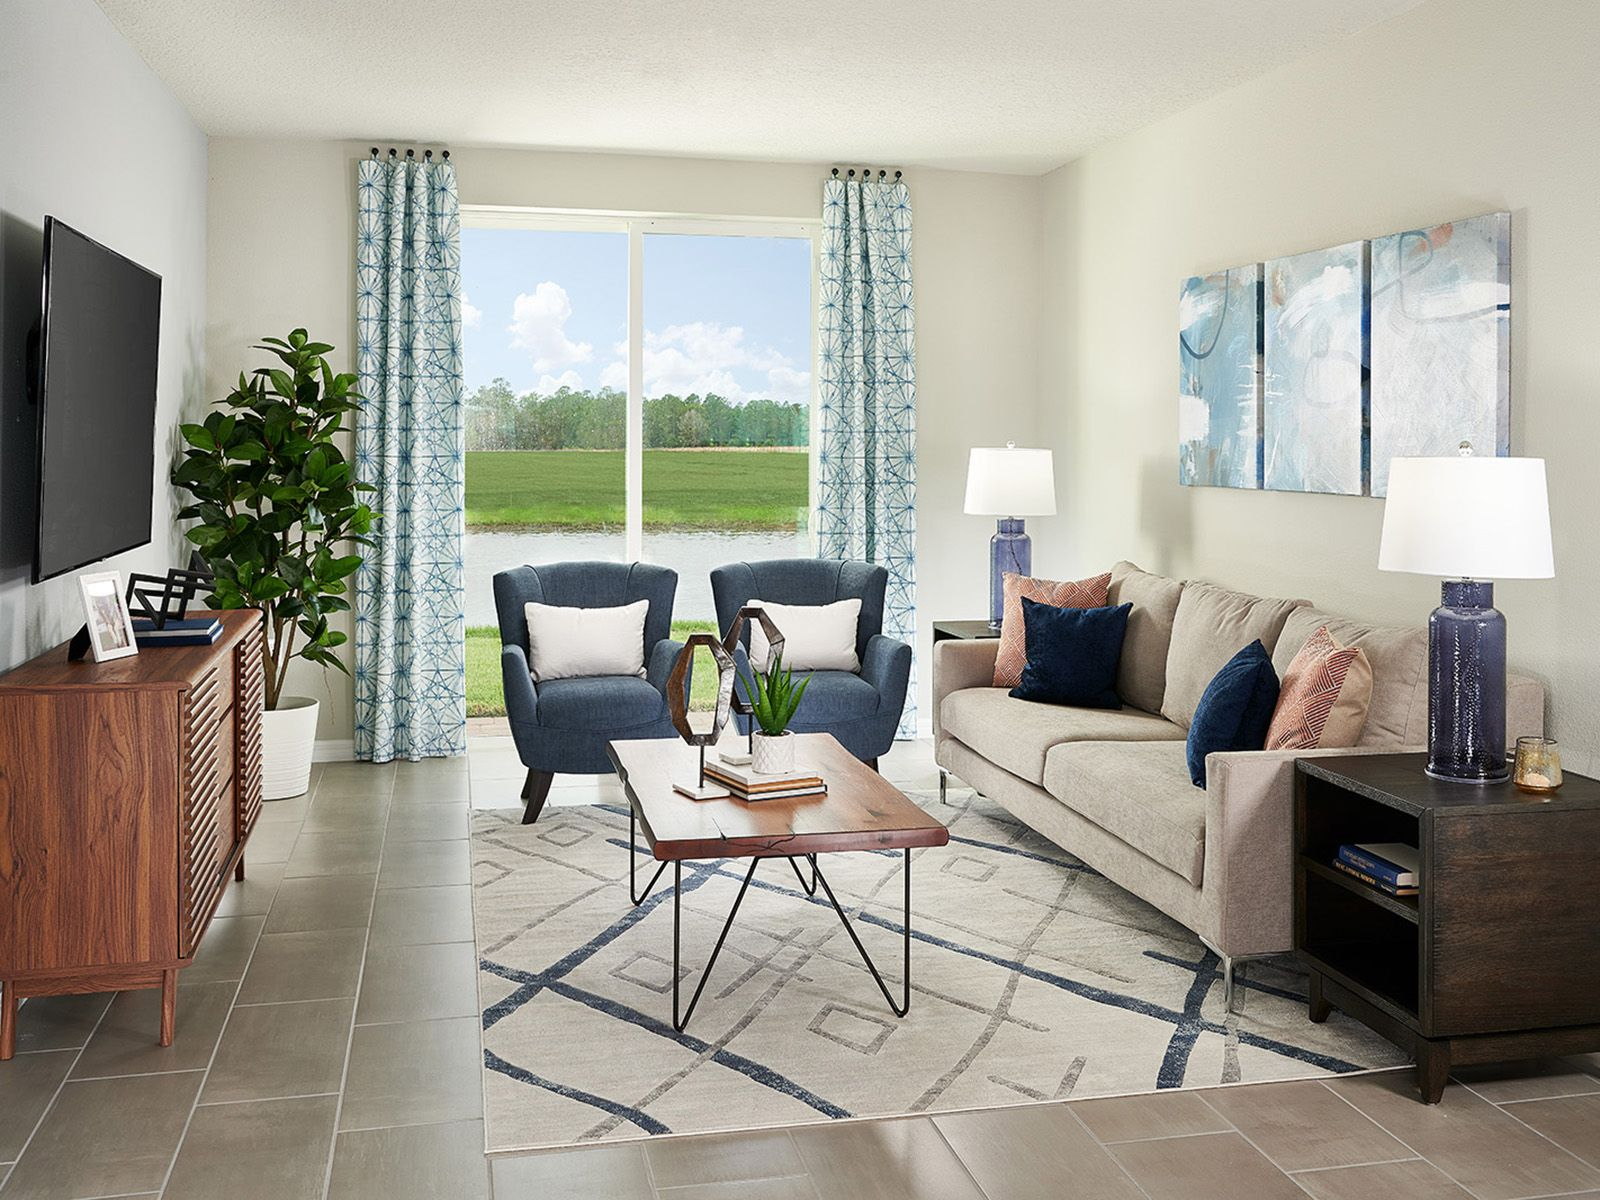 Living Area featured in the Daphne By Meritage Homes in Daytona Beach, FL